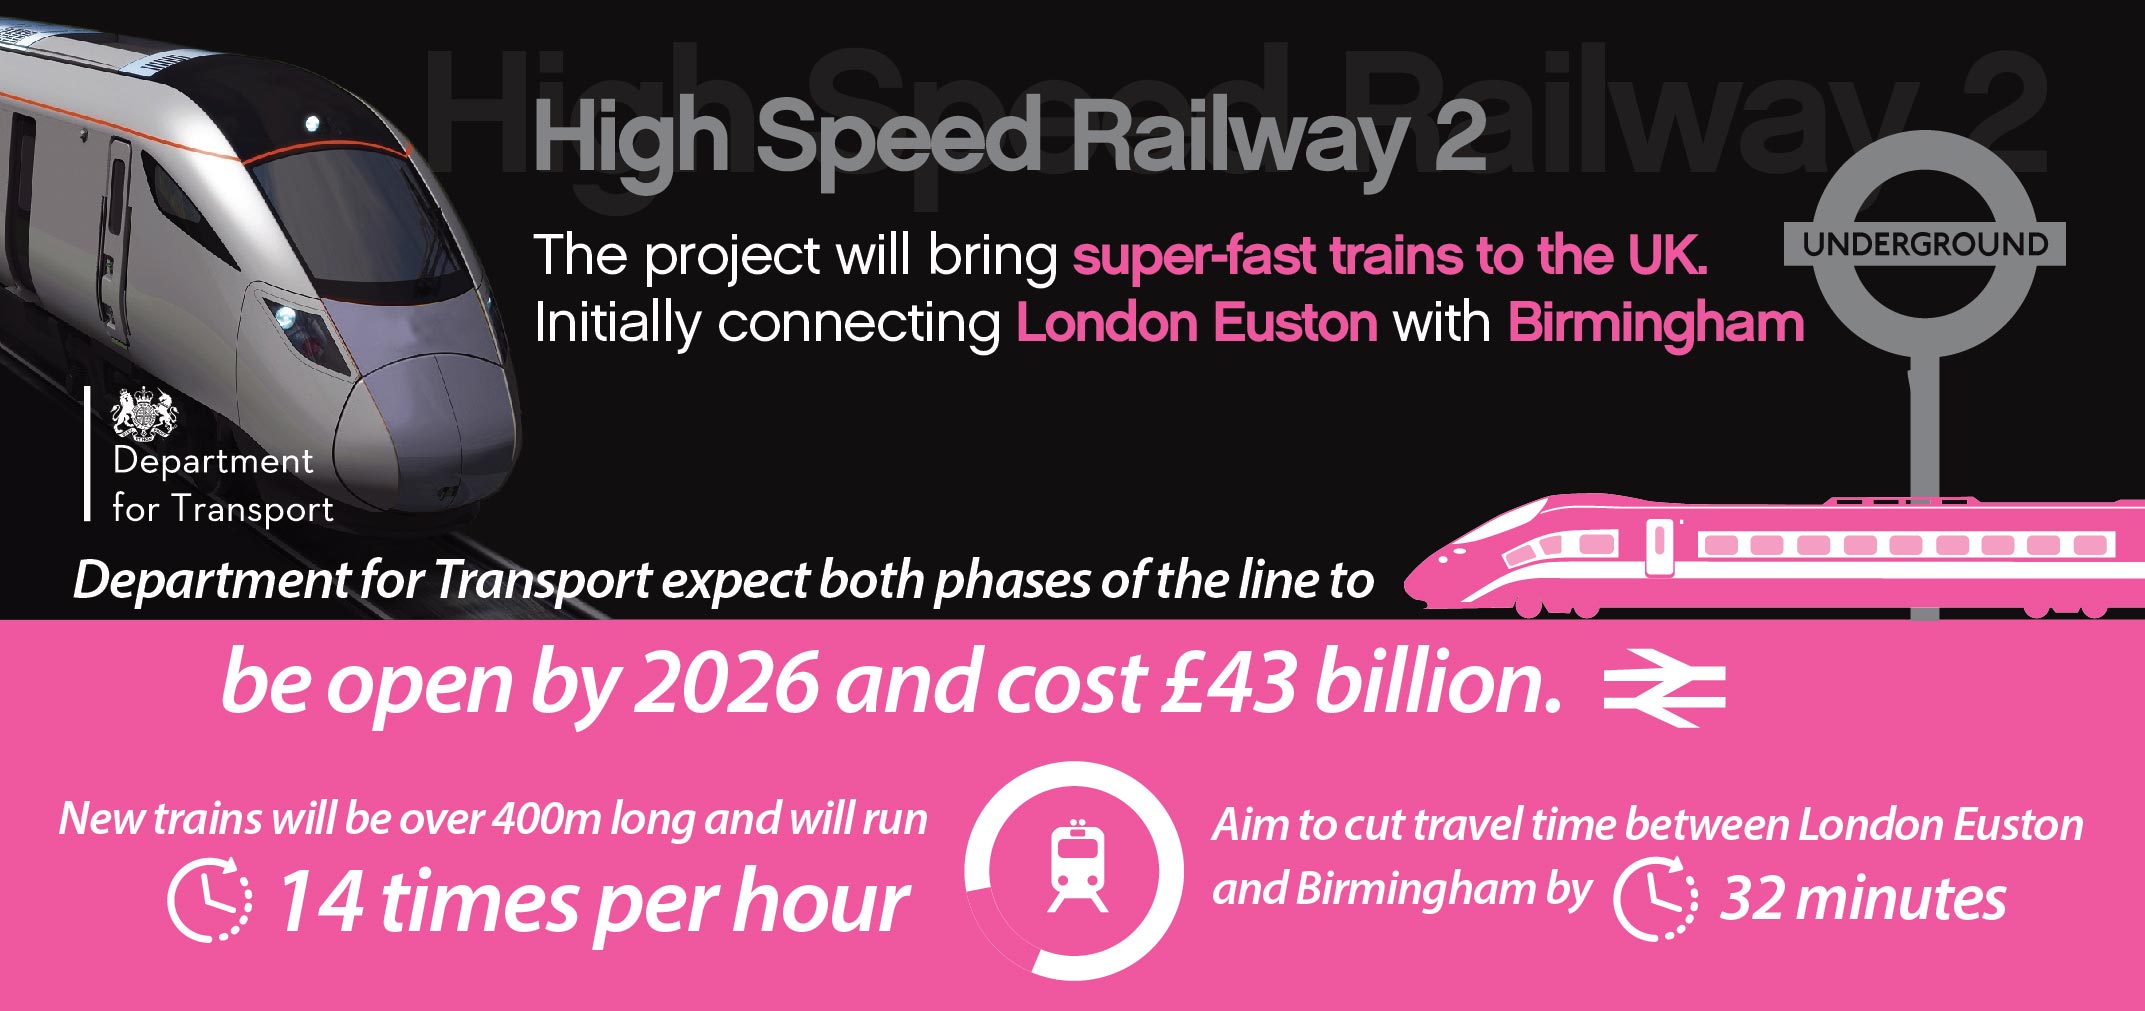 High Speed Railway 2 summary